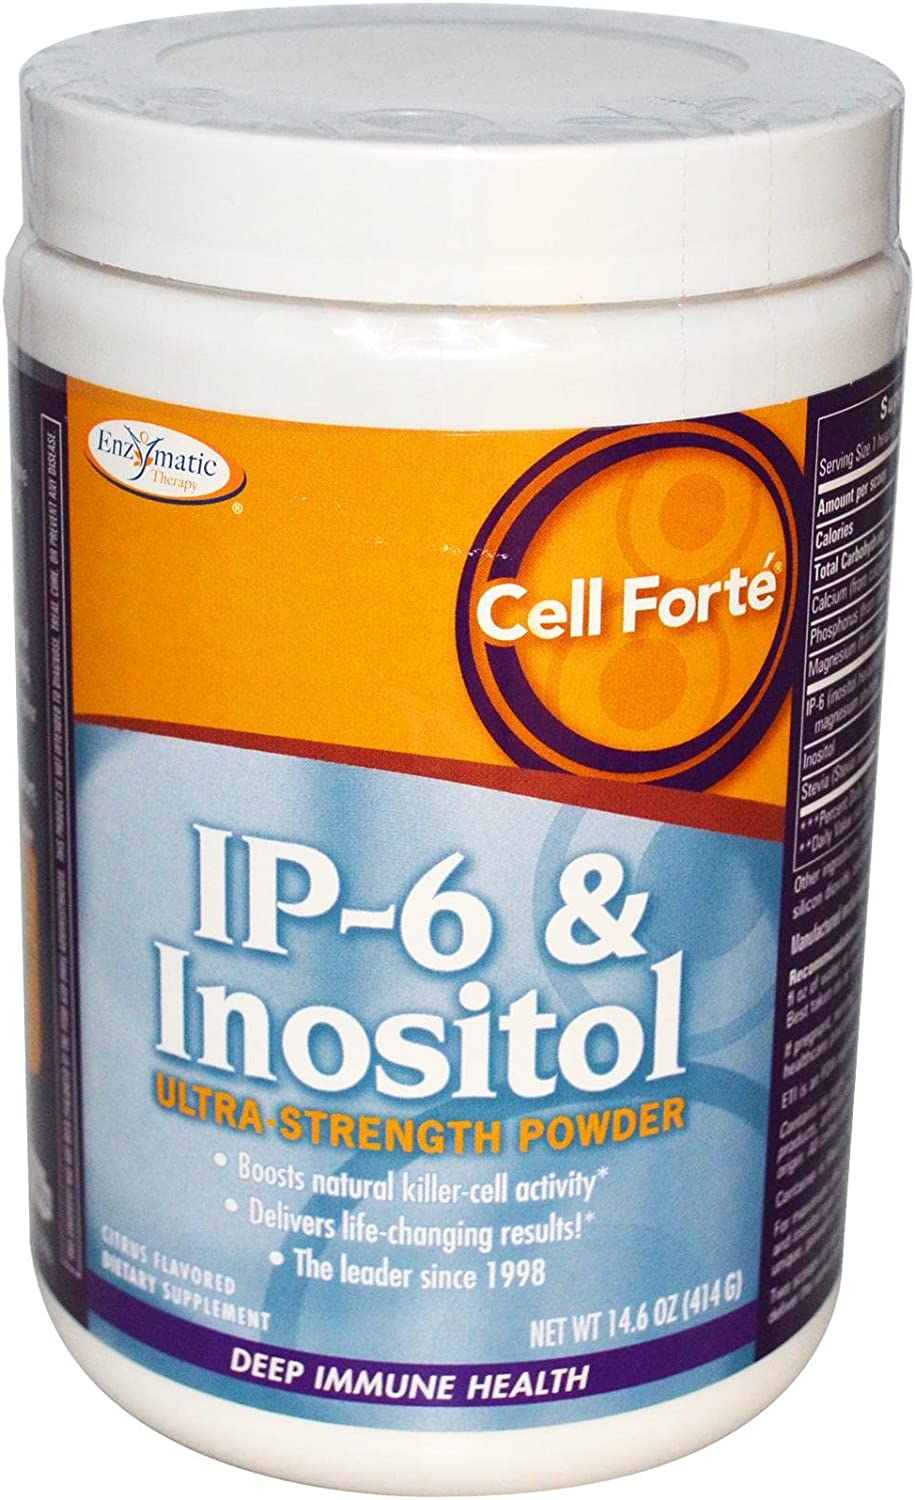 Enzymatic Therapy - Cell Fort� w/IP-6 & Inositol powder - 14.6 oz